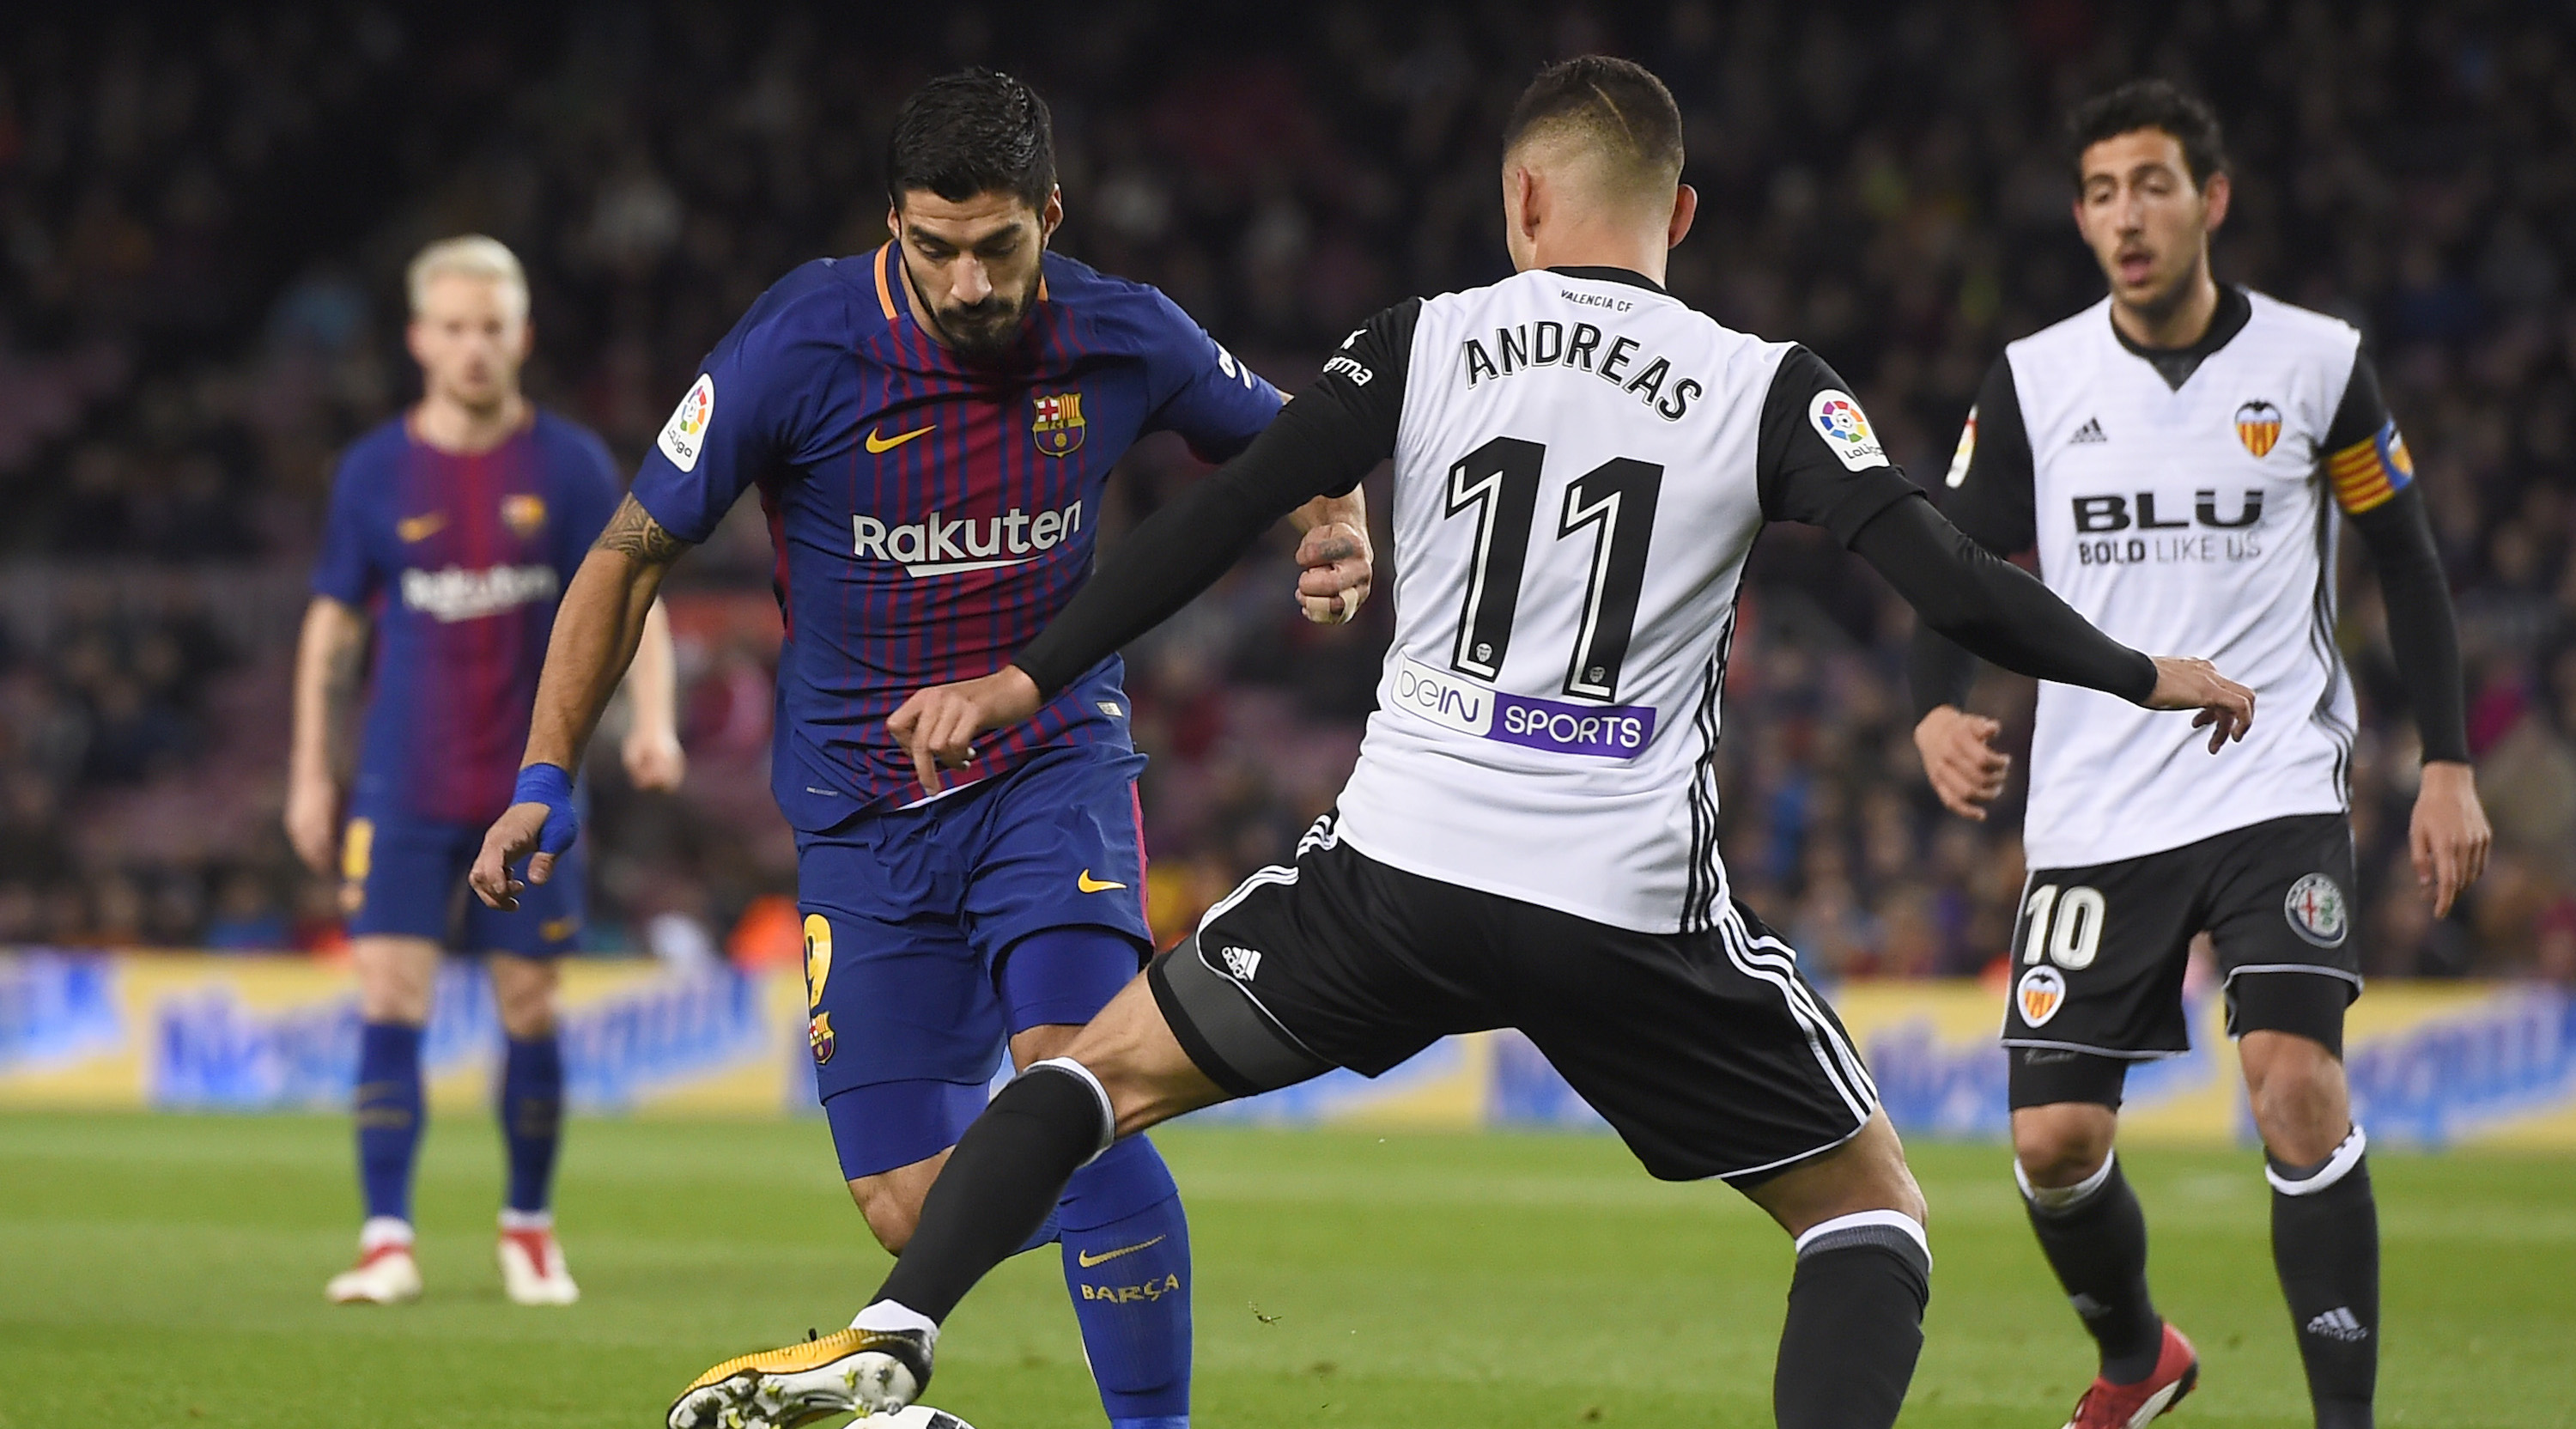 Barcelona's Uruguayan forward Luis Suarez (L) vies with Valencia's Brazilian forward Andreas Pereira during the Spanish 'Copa del Rey' (King's cup) first leg semi-final football match between FC Barcelona and Valencia CF at the Camp Nou stadium in Barcelona on February 01, 2018. / AFP PHOTO / Josep LAGO (Photo credit should read JOSEP LAGO/AFP/Getty Images)